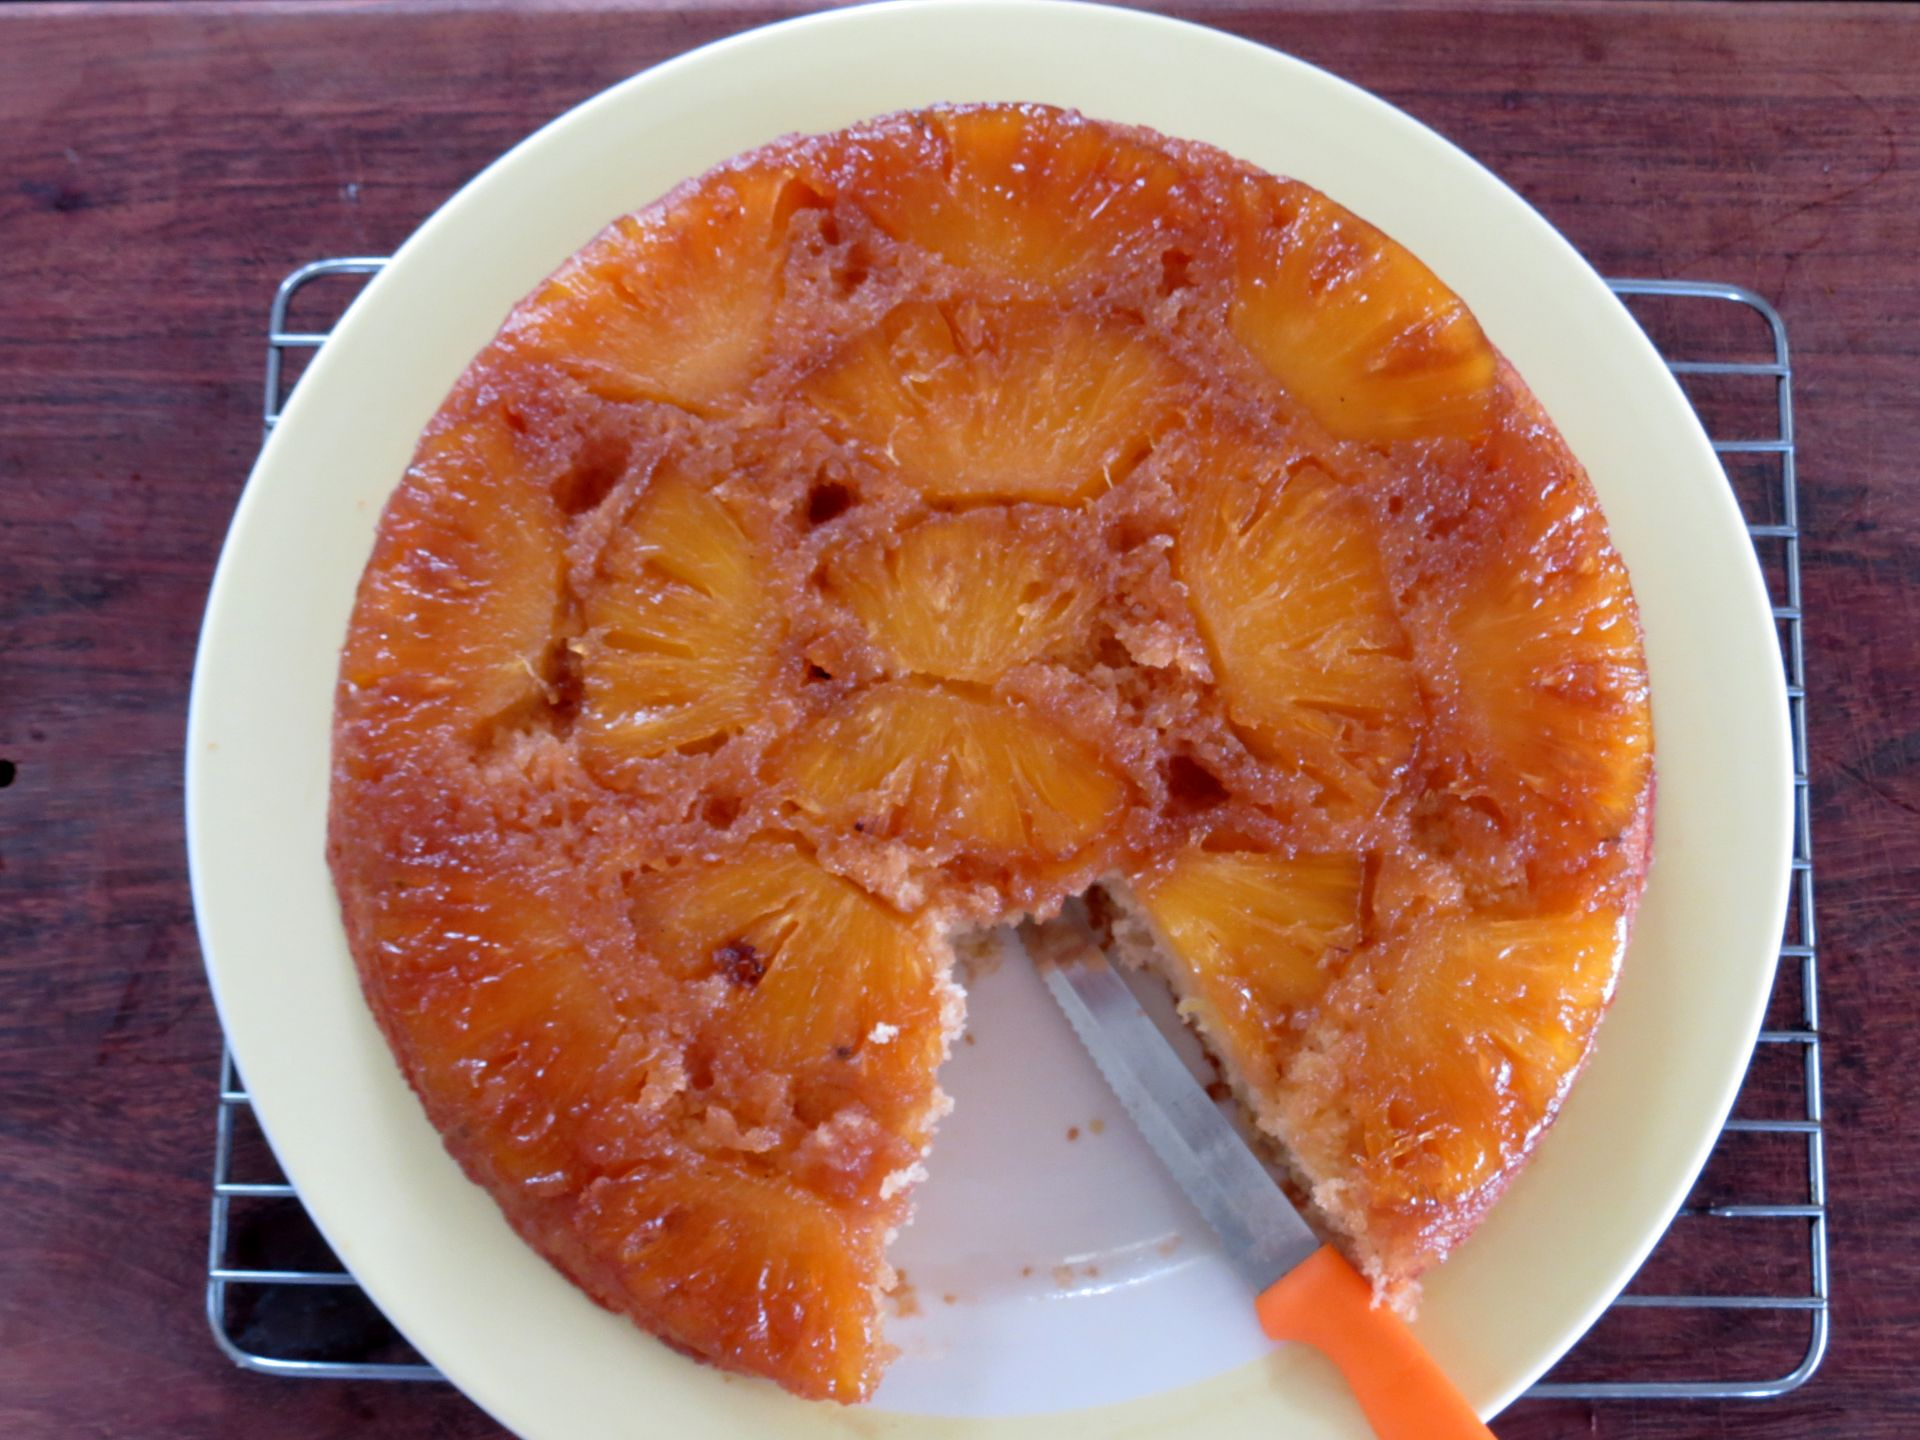 Pineapple Upside Down Cake Recipe - The Frugal ChefThe Frugal Chef